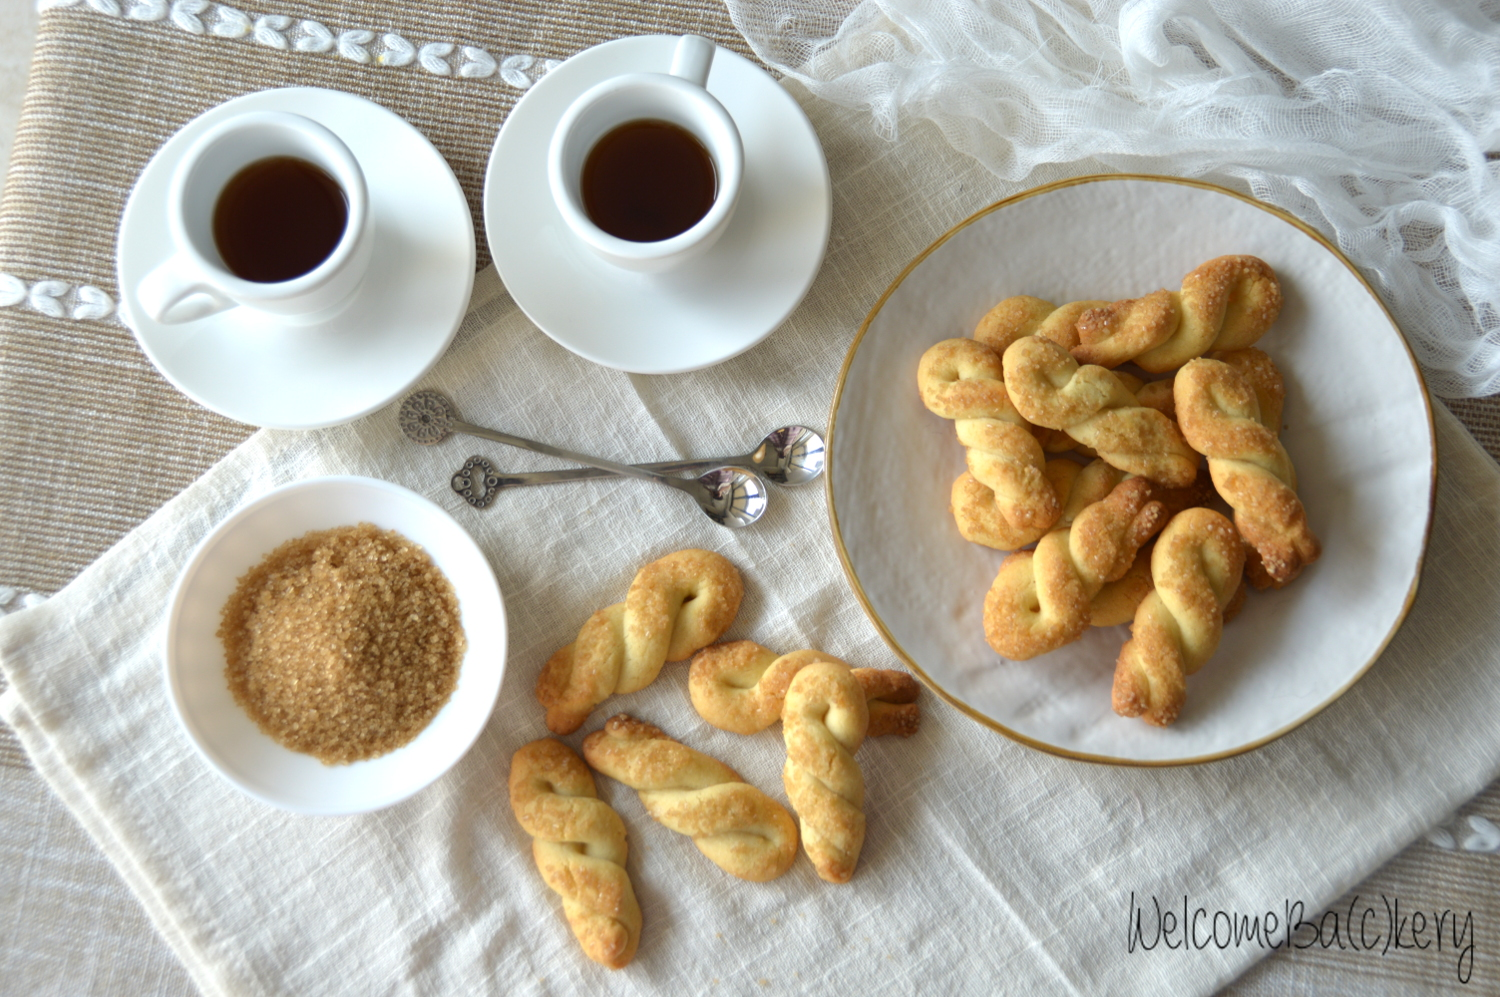 Butter twists, with egg whites